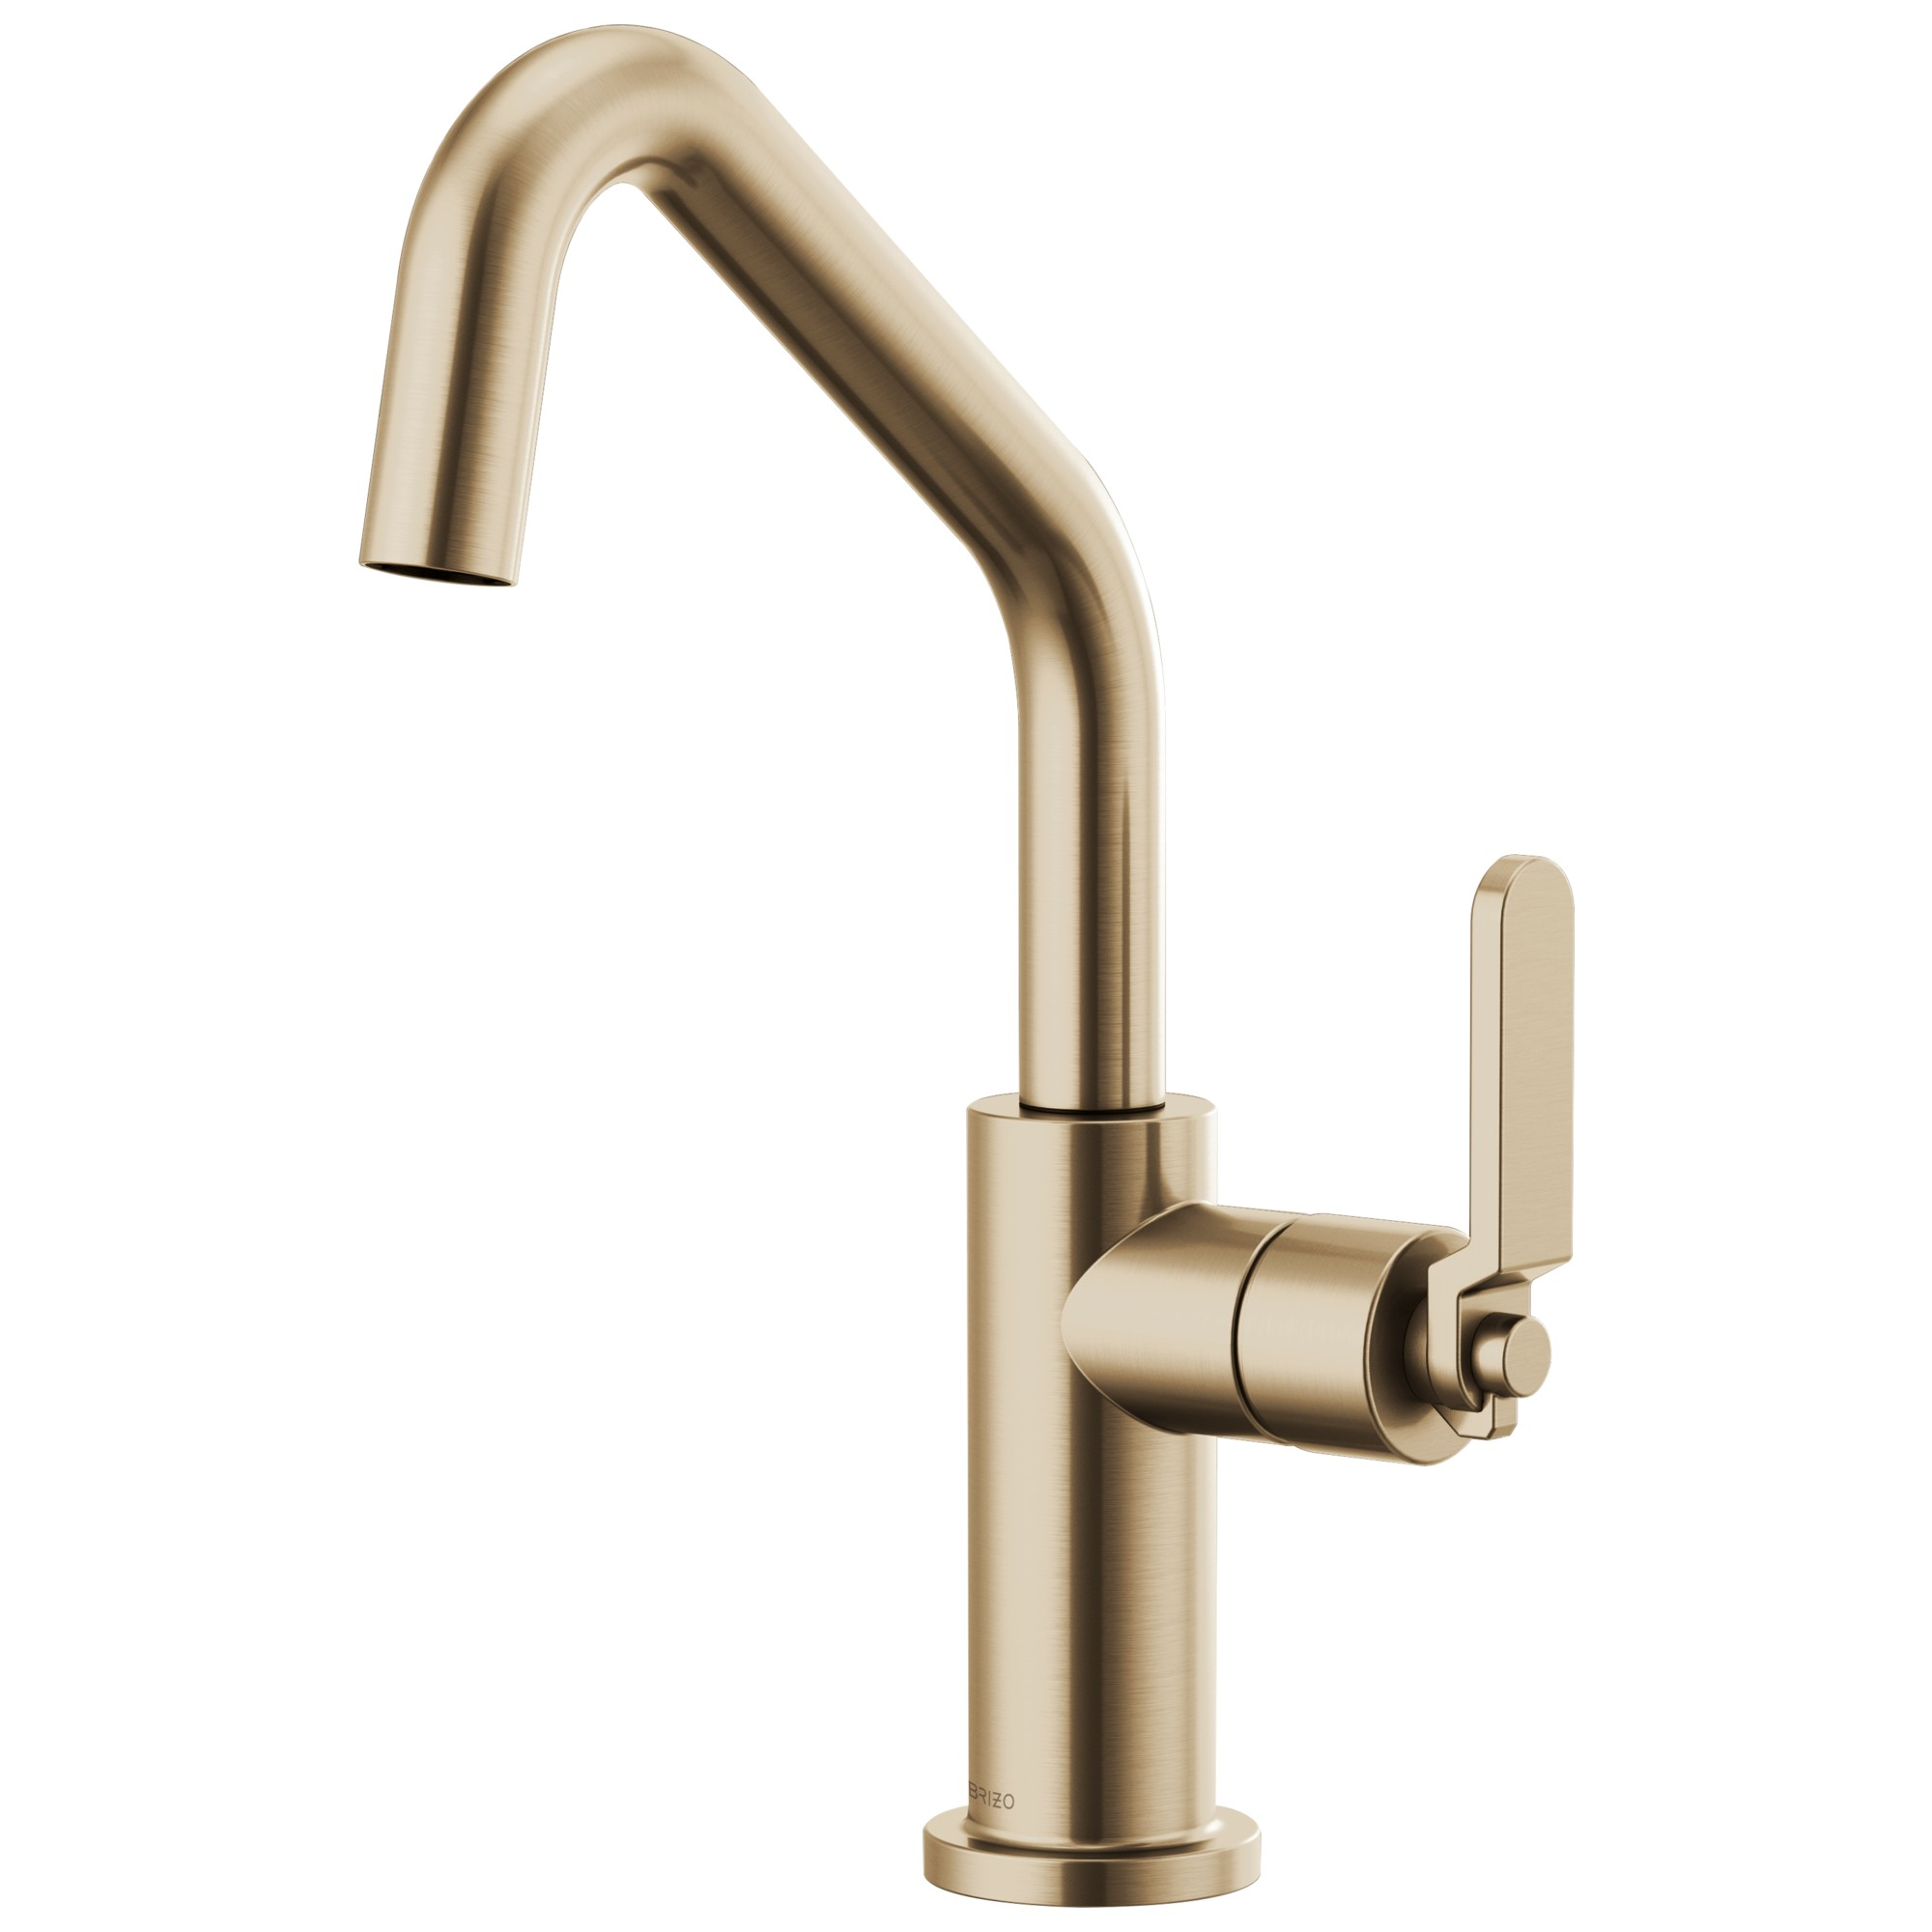 Brizo 61064LF-GL Litze Bar Faucet with Angled Spout and Industrial Handle - Luxe Gold